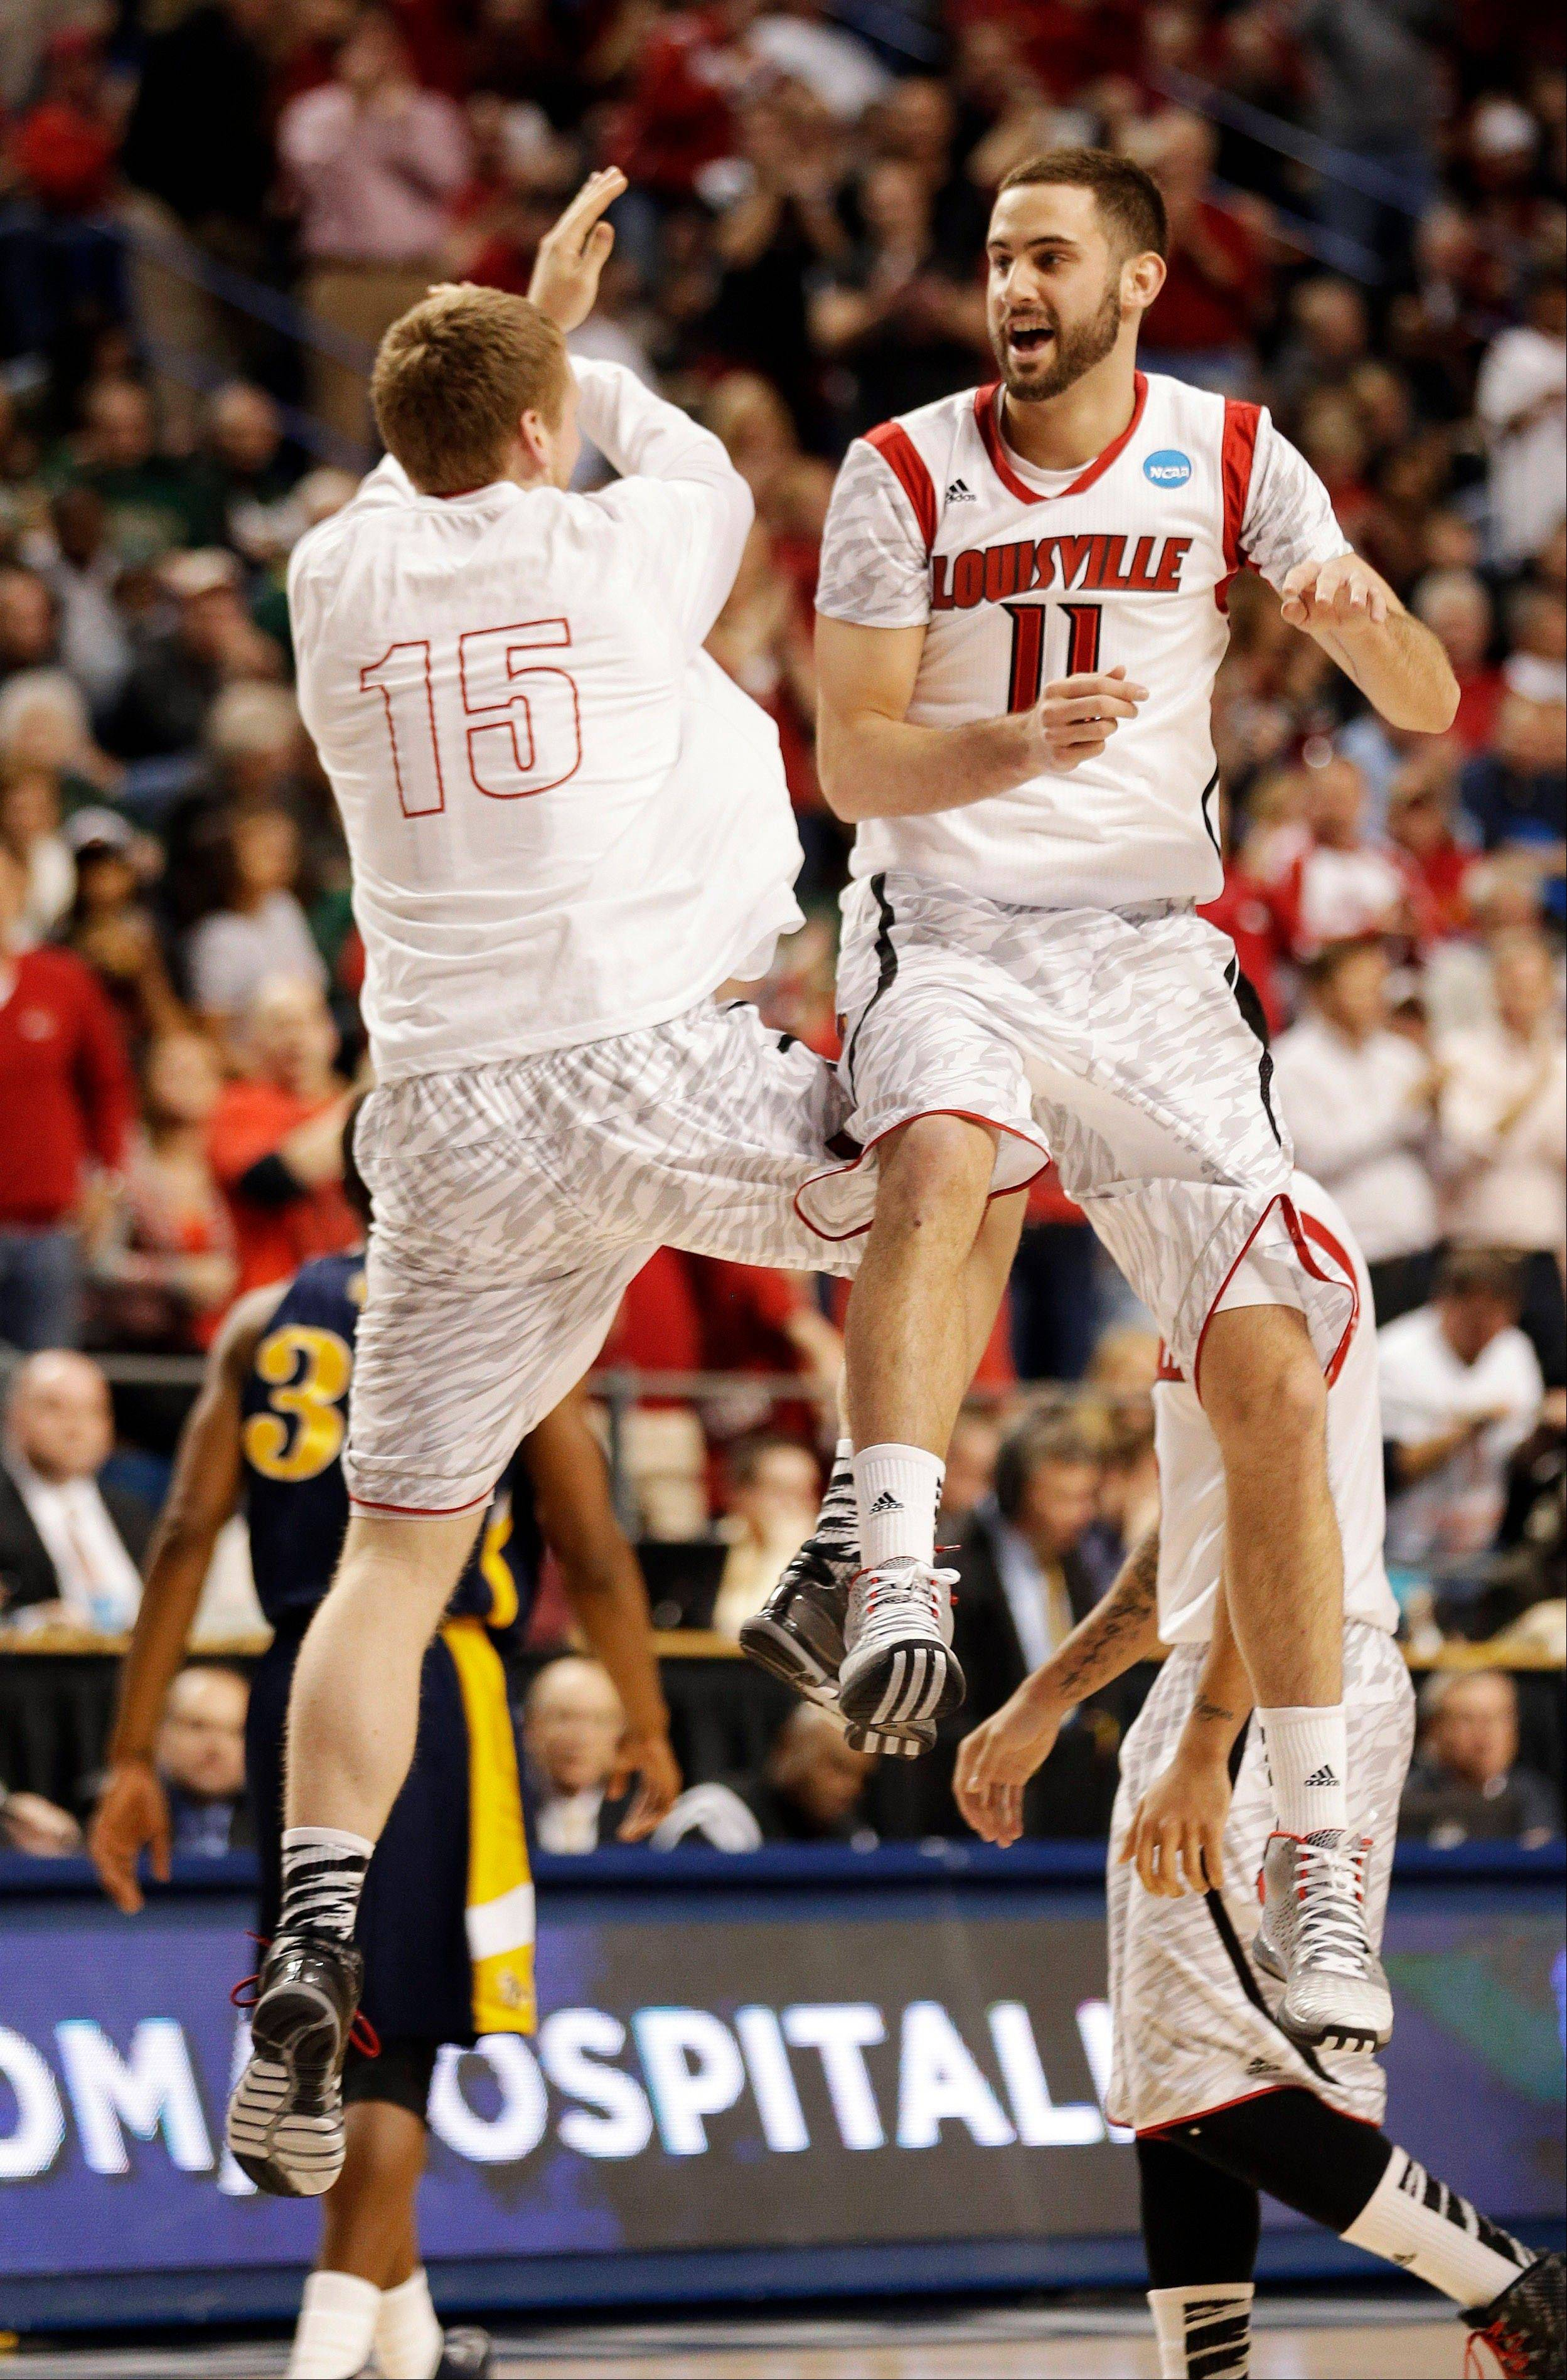 Louisville's Luke Hancock (11) and Tim Henderson (15) celebrate during the second half of a second-round game in the NCAA college basketball tournament against the North Carolina A&T Thursday, March 21, 2013, in Lexington, Ky.